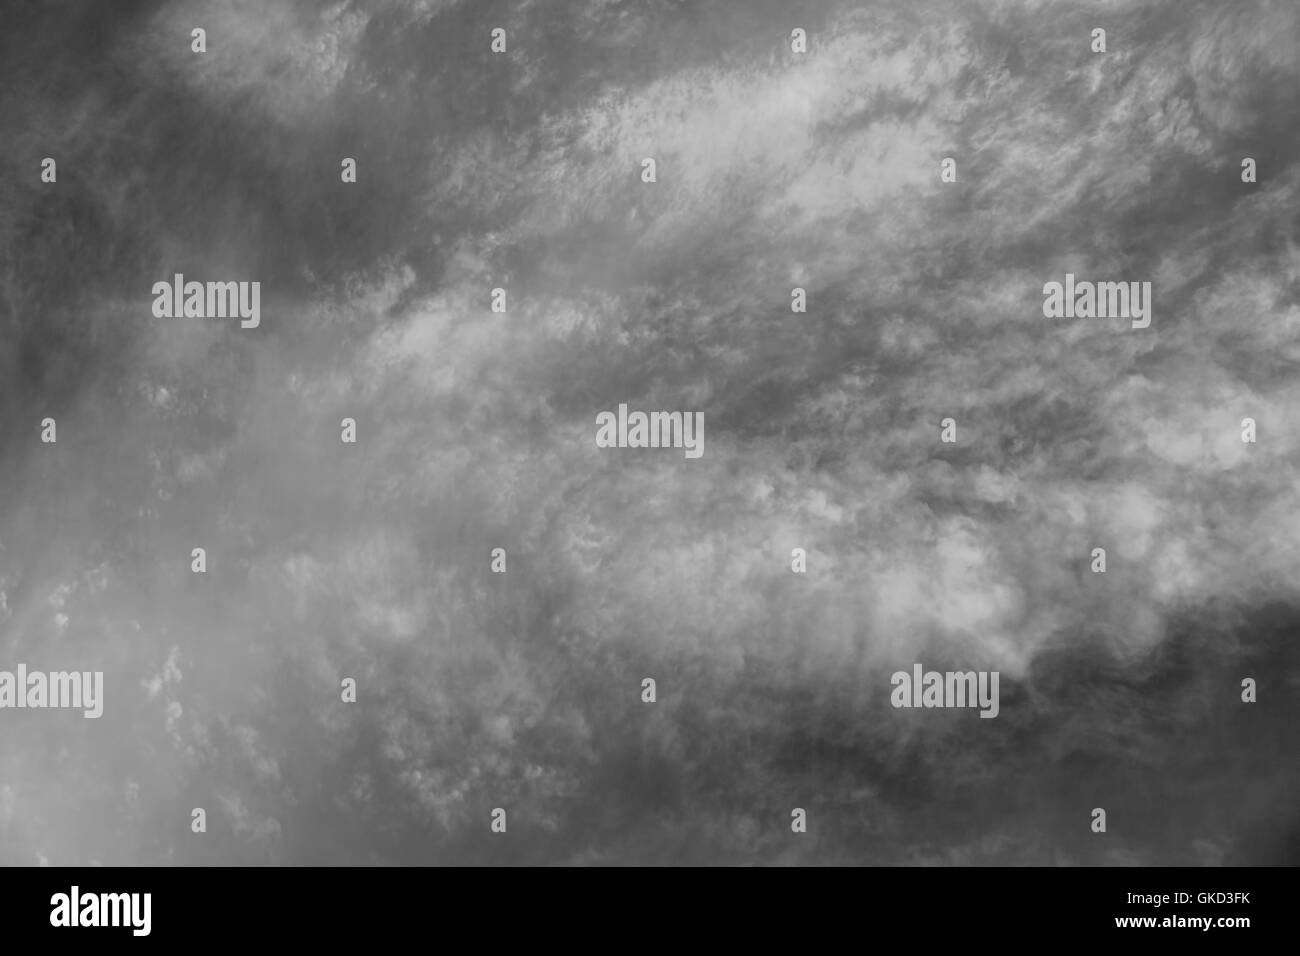 Partly cloudy background pattern - Stock Image